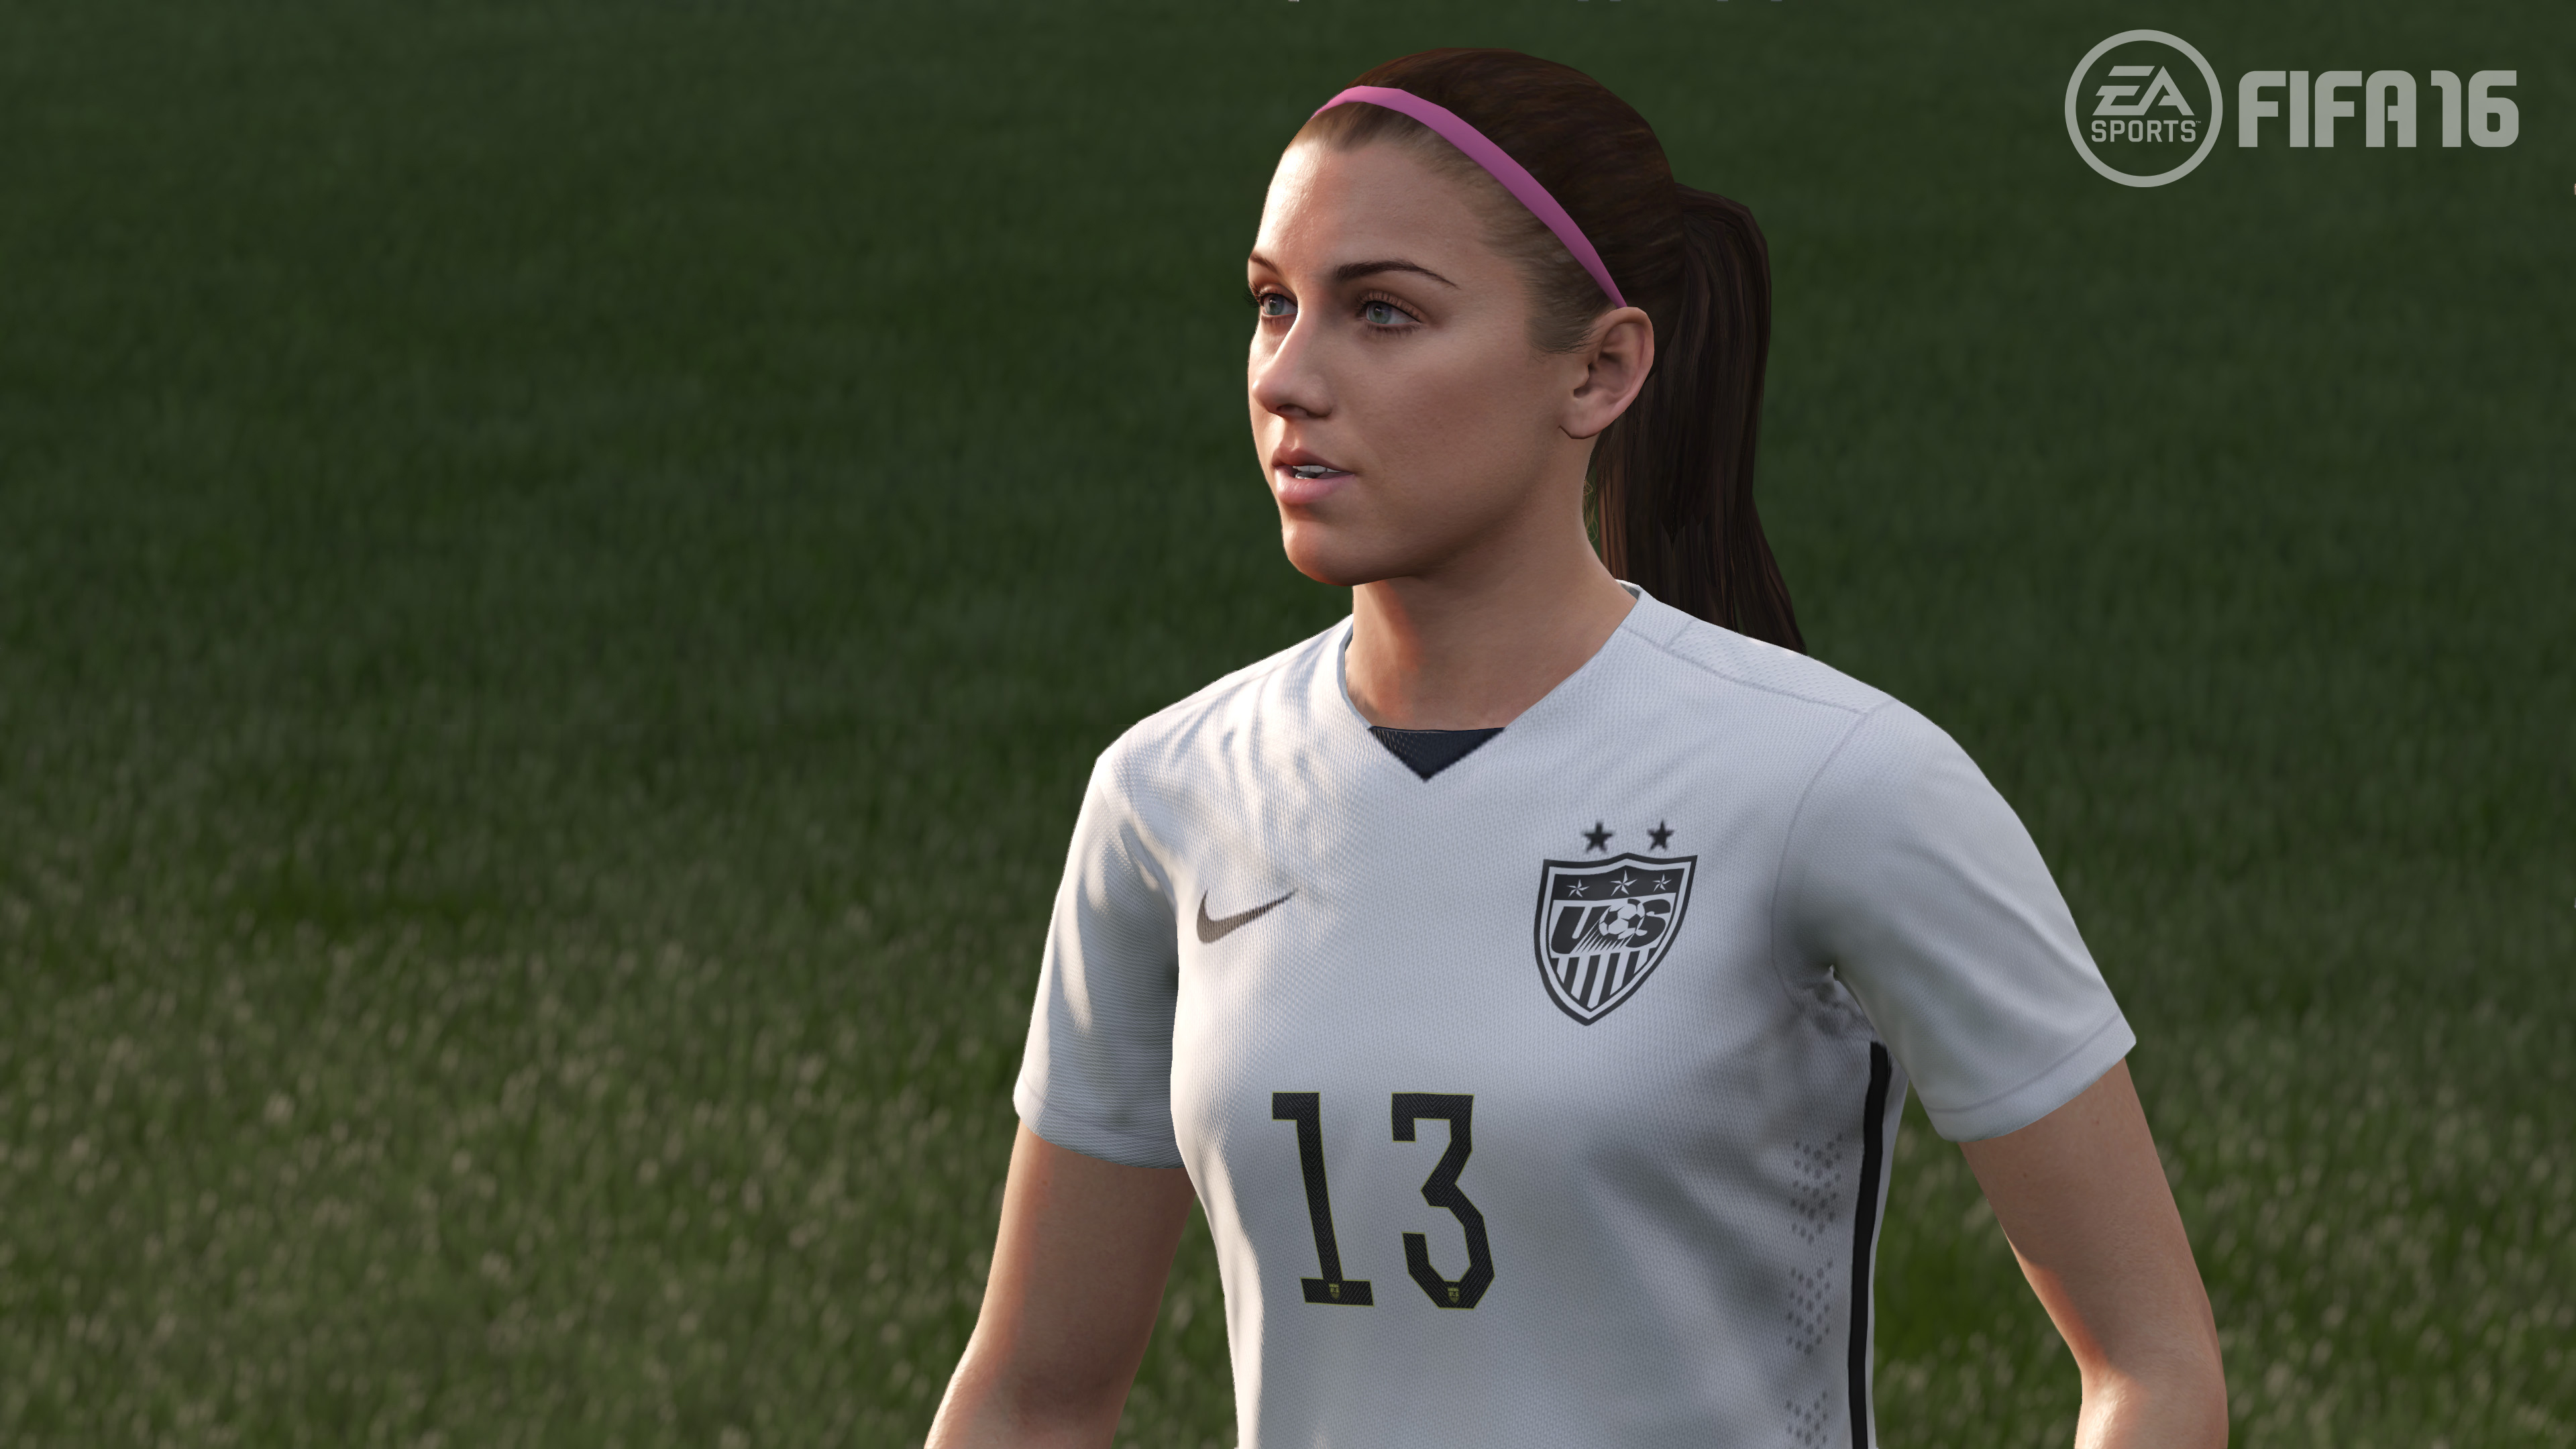 Women will finally make their debut in FIFA 16